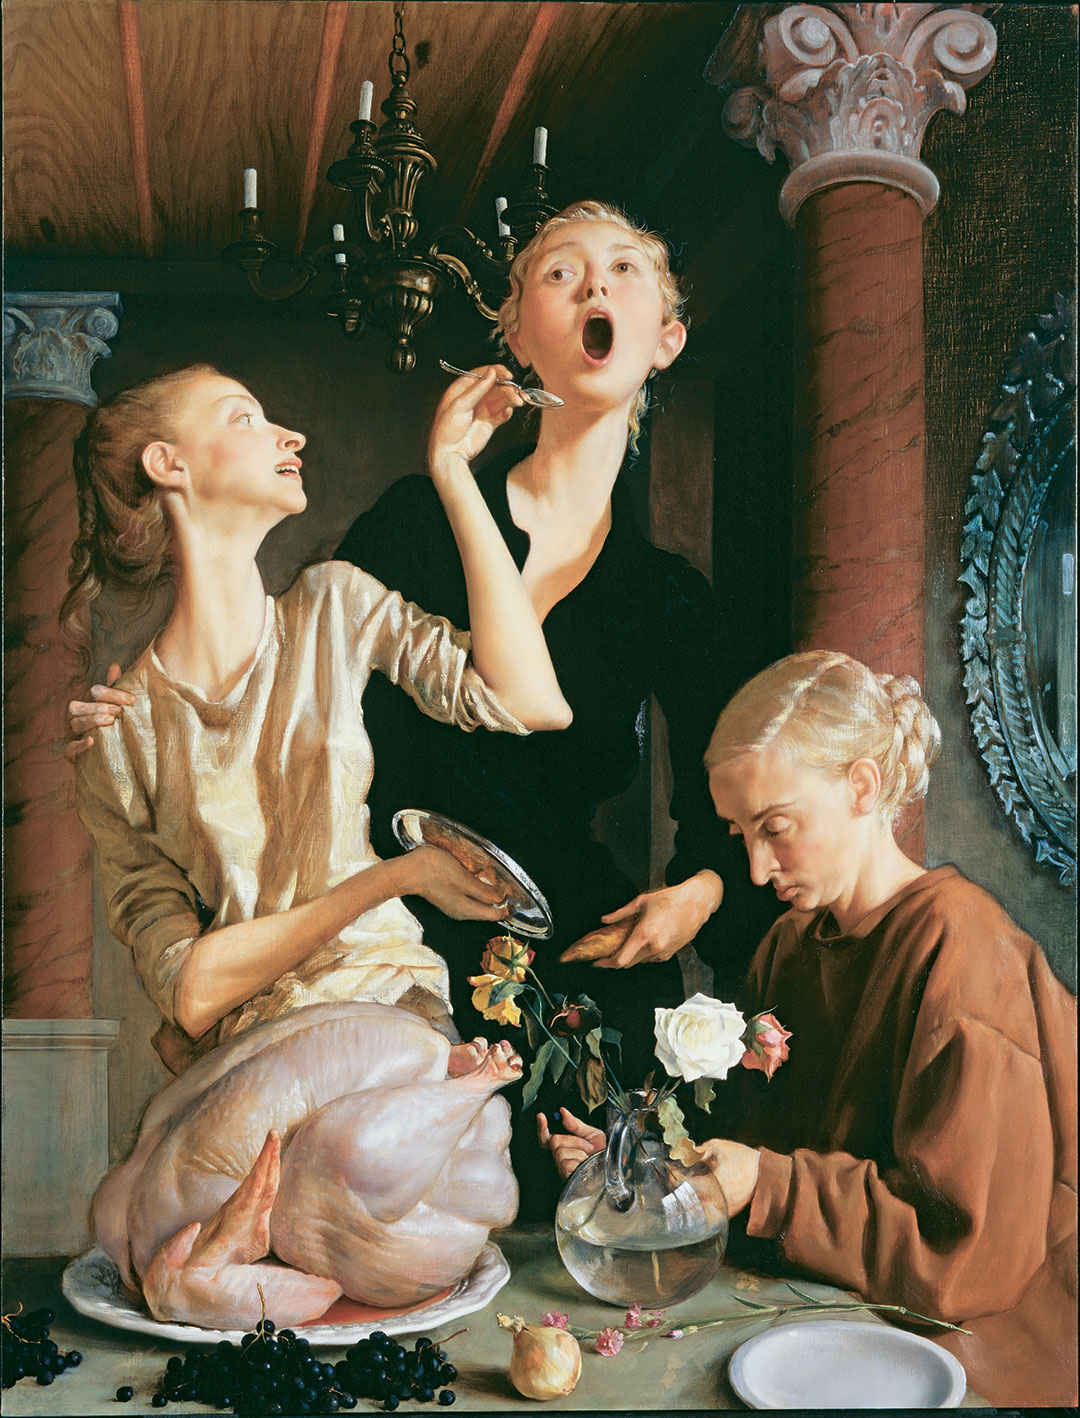 John Currin, Thanksgiving, 2003